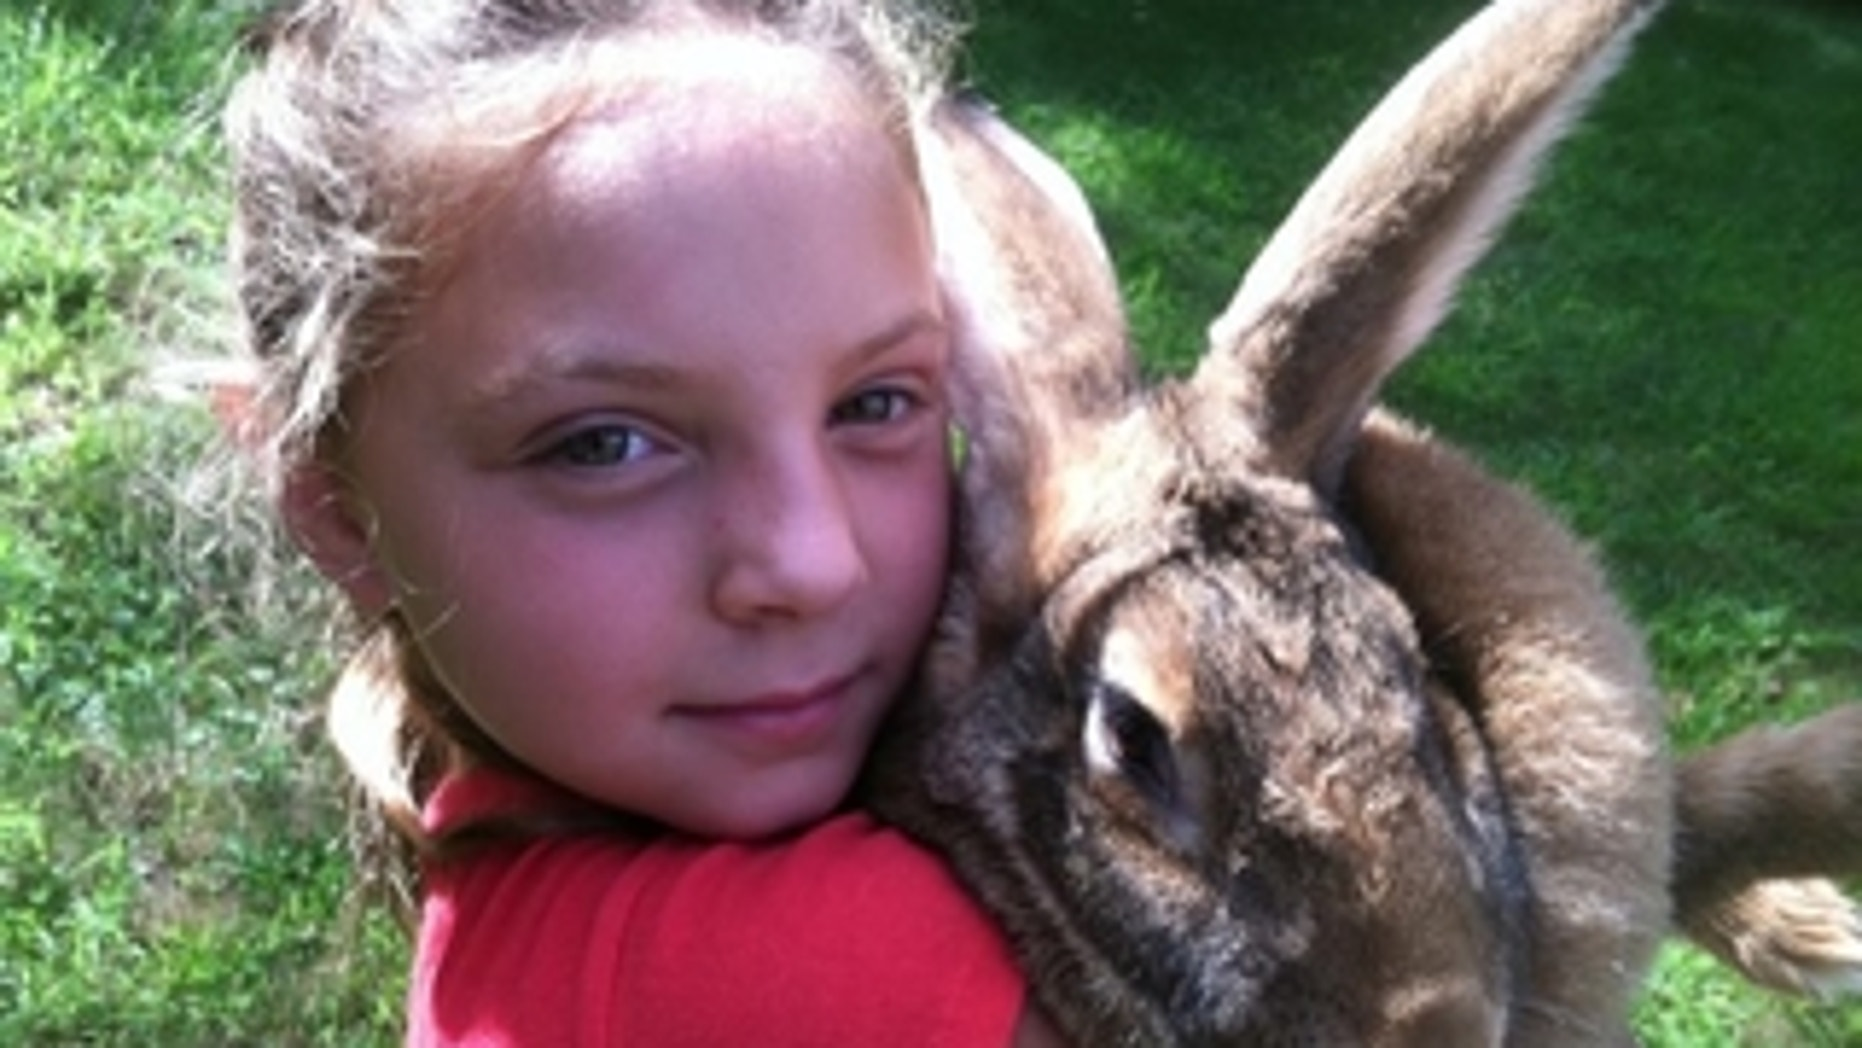 """I don't want the bunny to go,"" Kayden Lidsky said, according to an online petition. (Change.org)"